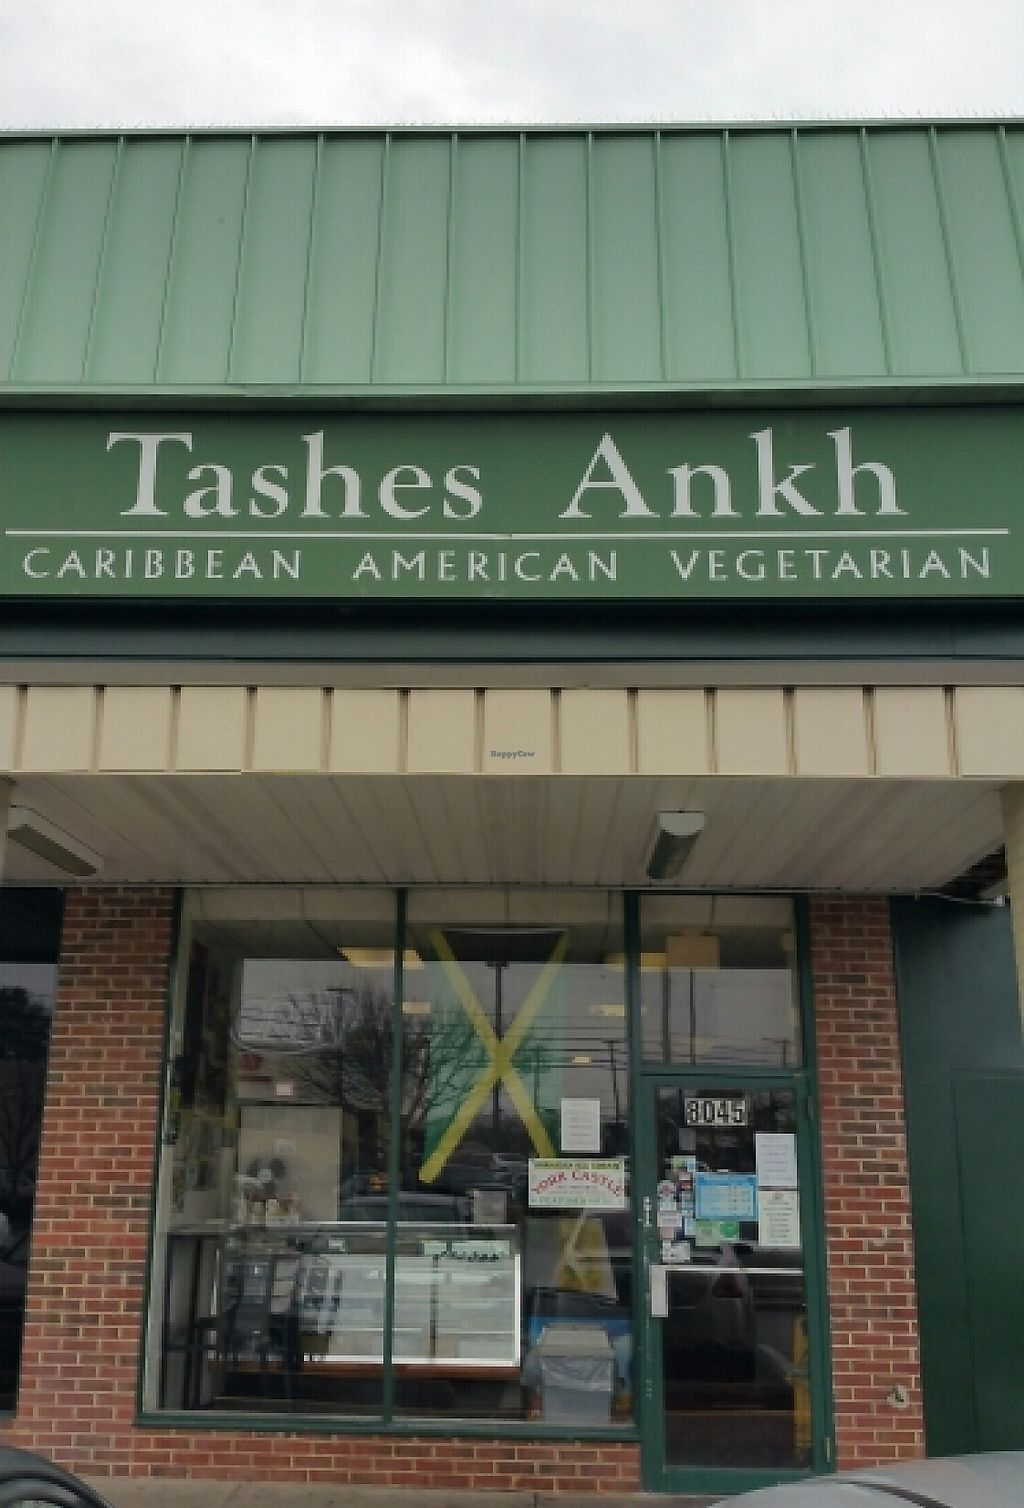 """Photo of Tashes Ankh  by <a href=""""/members/profile/HappyToo"""">HappyToo</a> <br/>the view from the parking lot <br/> March 5, 2016  - <a href='/contact/abuse/image/57586/201957'>Report</a>"""